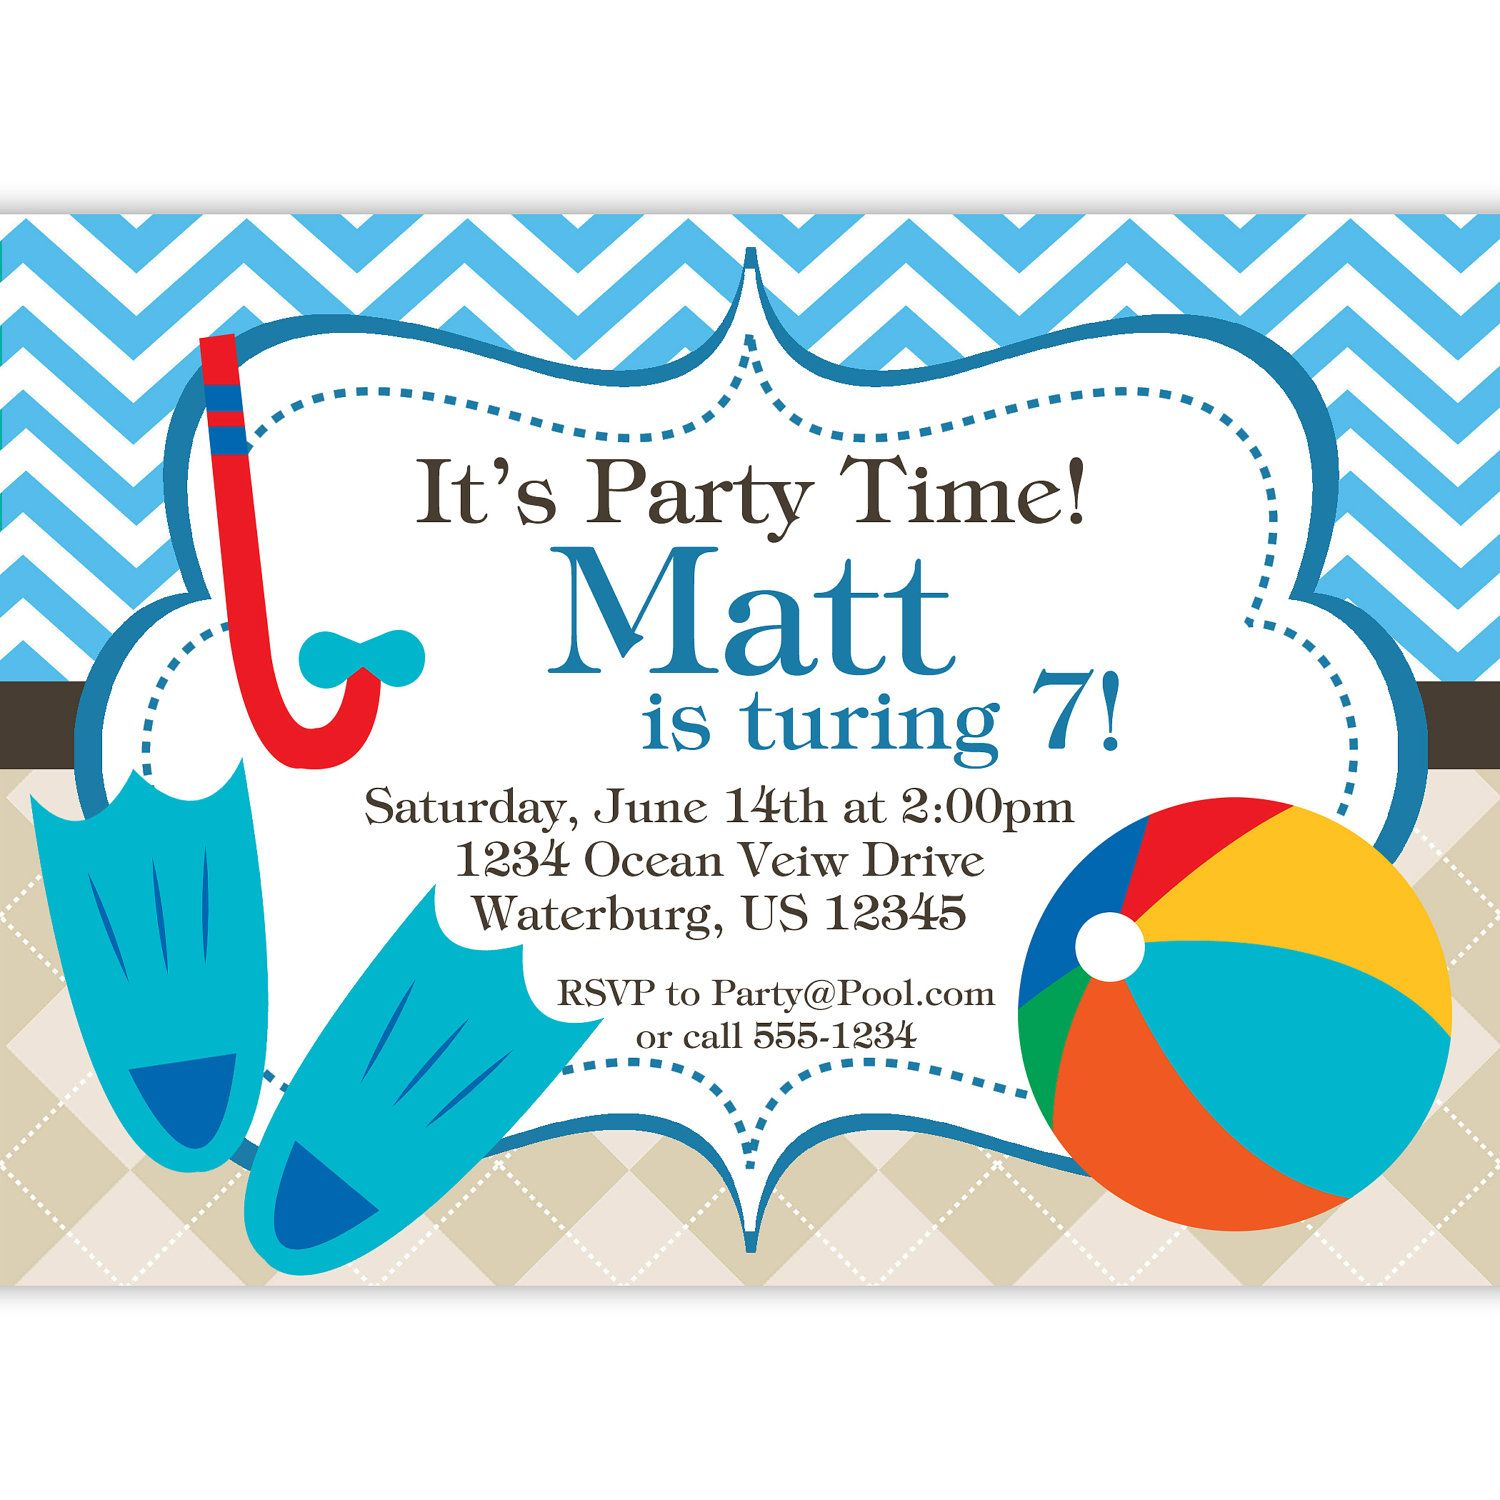 Pool Invitation Blue Chevron and Tan Argyle Beach Ball – Invite to Party